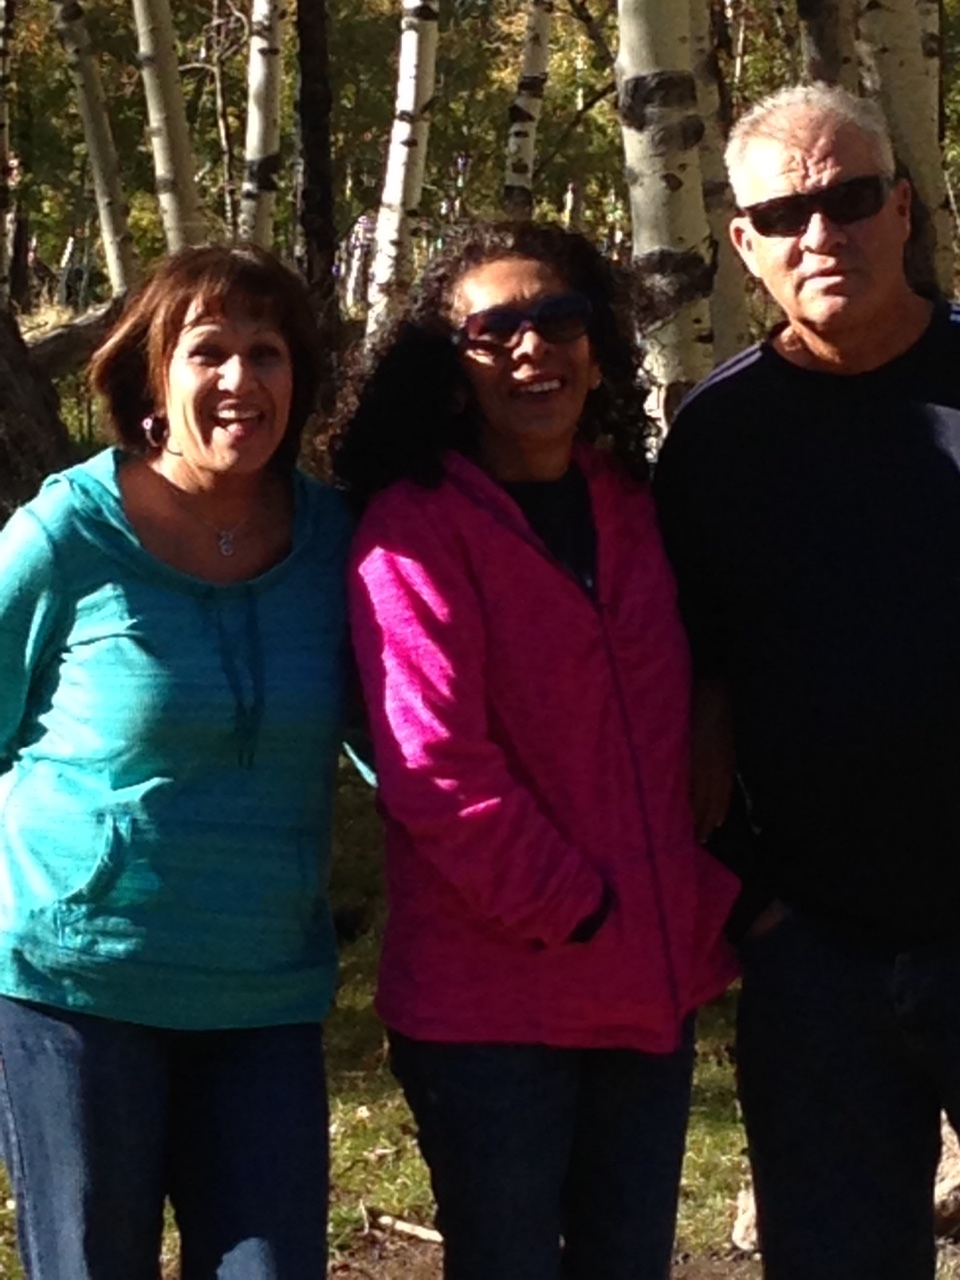 """William Contreras' fiancé Janet with his sister Roseann Atherton and Roseann's husband David Atherton. Roseann and David are both avid hunters, campers and anglers. They camp every weekend.     Normal   0           false   false   false     EN-US   X-NONE   X-NONE                                                                                                                                                                                                                                                                                                                                                                                                                                                                                                                                                                                                                                                                                                                                                                                                                                                        /* Style Definitions */  table.MsoNormalTable {mso-style-name:""""Table Normal""""; mso-tstyle-rowband-size:0; mso-tstyle-colband-size:0; mso-style-noshow:yes; mso-style-priority:99; mso-style-parent:""""""""; mso-padding-alt:0in 5.4pt 0in 5.4pt; mso-para-margin:0in; mso-para-margin-bottom:.0001pt; mso-pagination:widow-orphan; font-size:11.0pt; font-family:""""Calibri"""",sans-serif; mso-ascii-font-family:Calibri; mso-ascii-theme-font:minor-latin; mso-hansi-font-family:Calibri; mso-hansi-theme-font:minor-latin;}"""